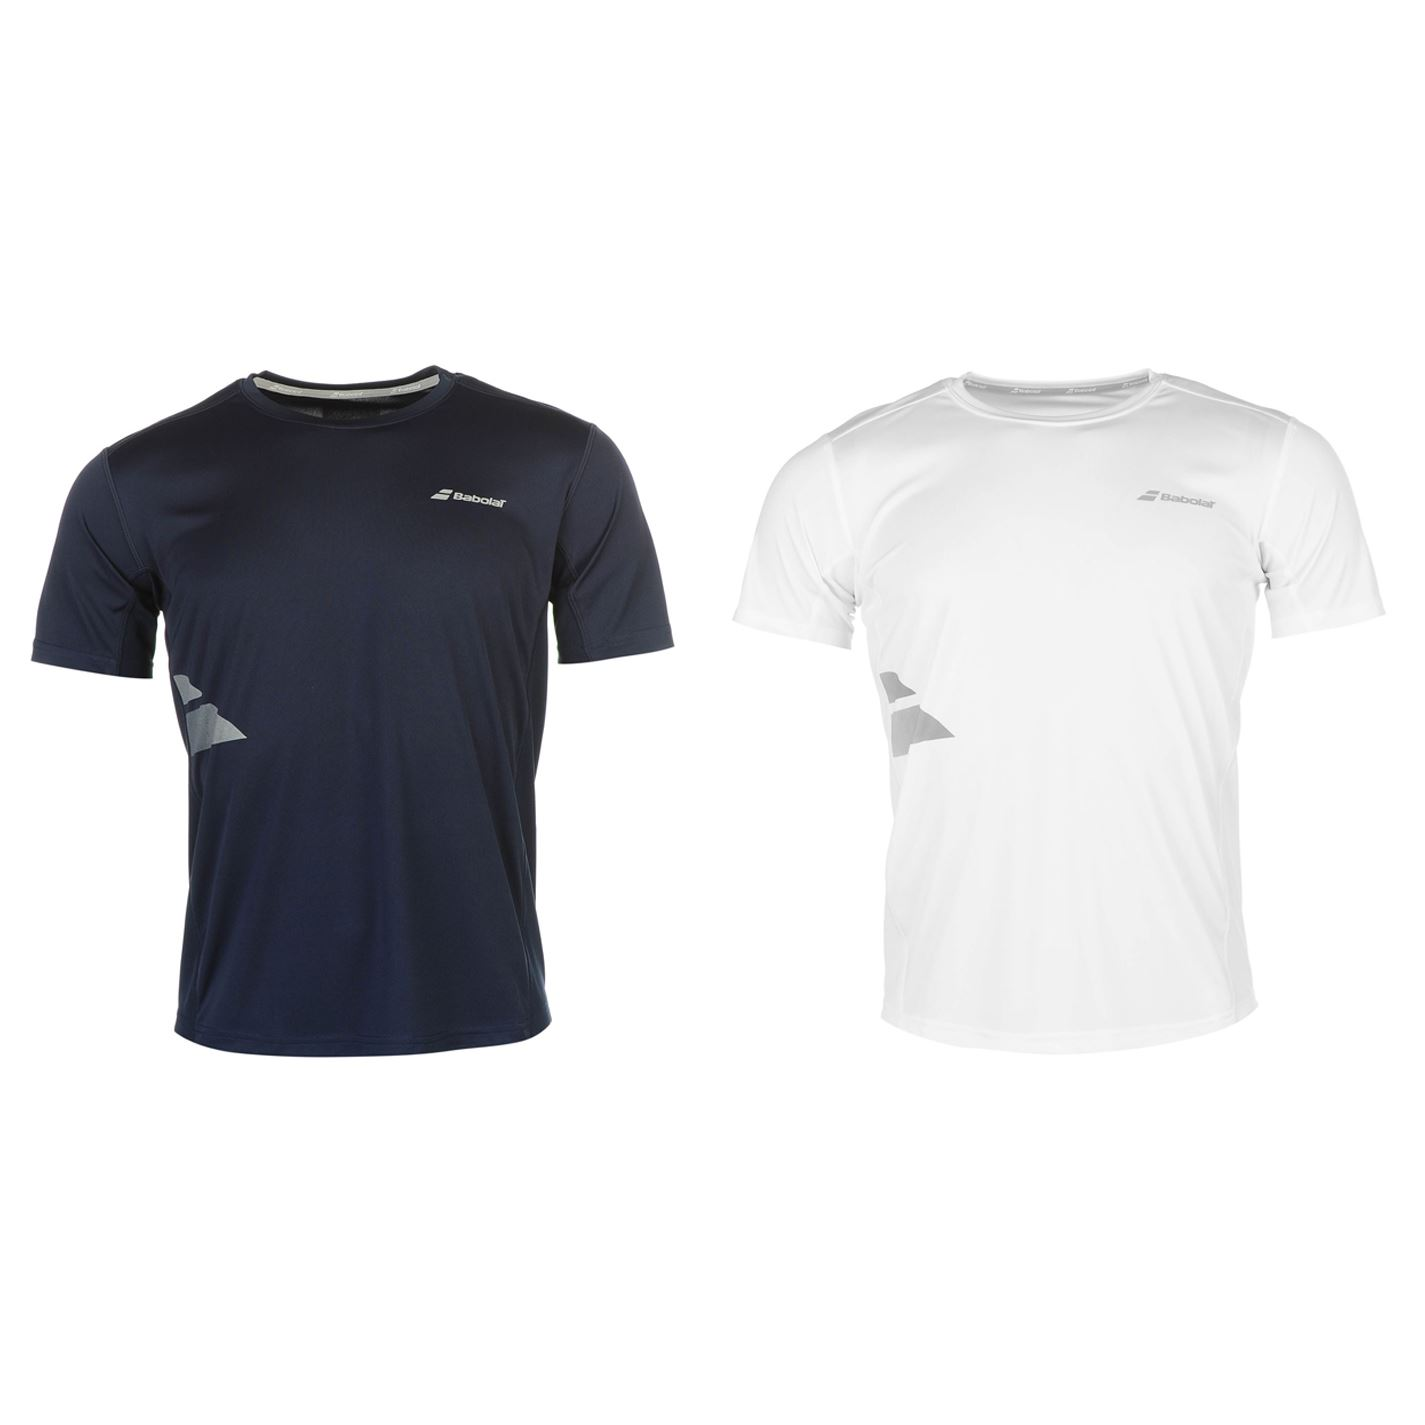 huge discount 3179d 55492 Details about Babolat Match Tennis T-Shirt Mens Top T-Shirt Athletic  Apparel- show original title